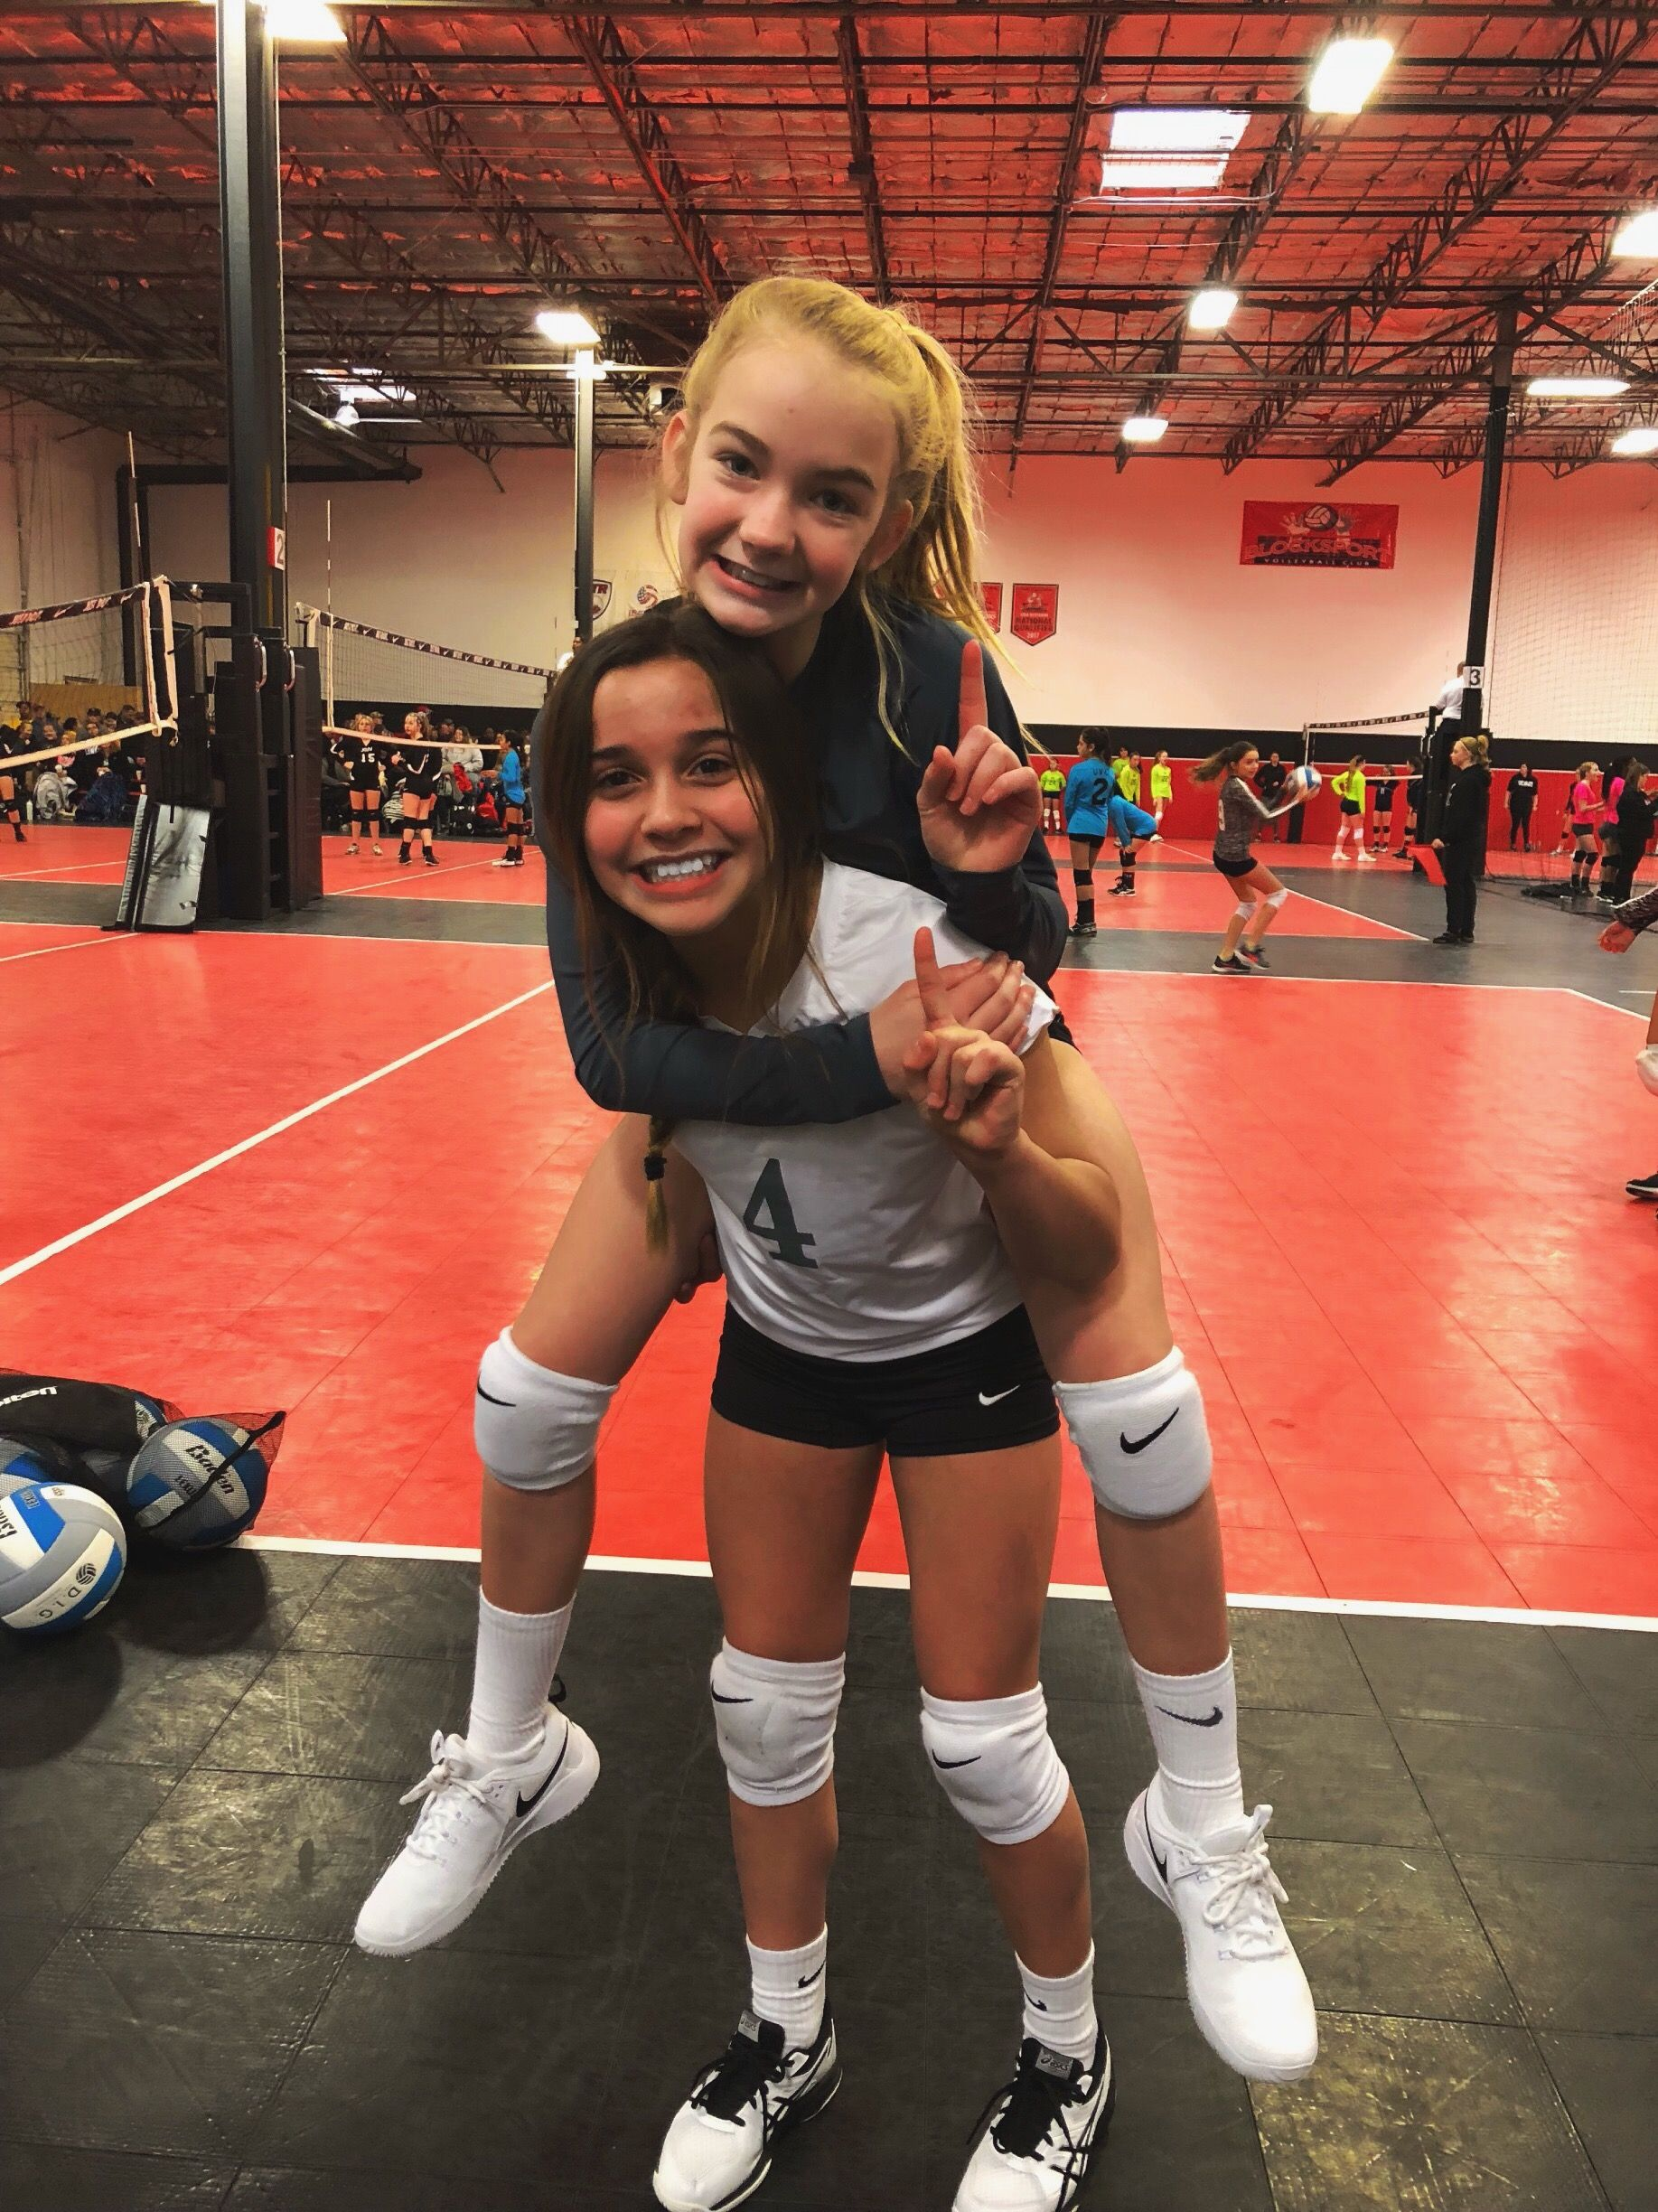 Pin By Ella On Volleyball Women Volleyball Volleyball Pictures Volleyball Photos